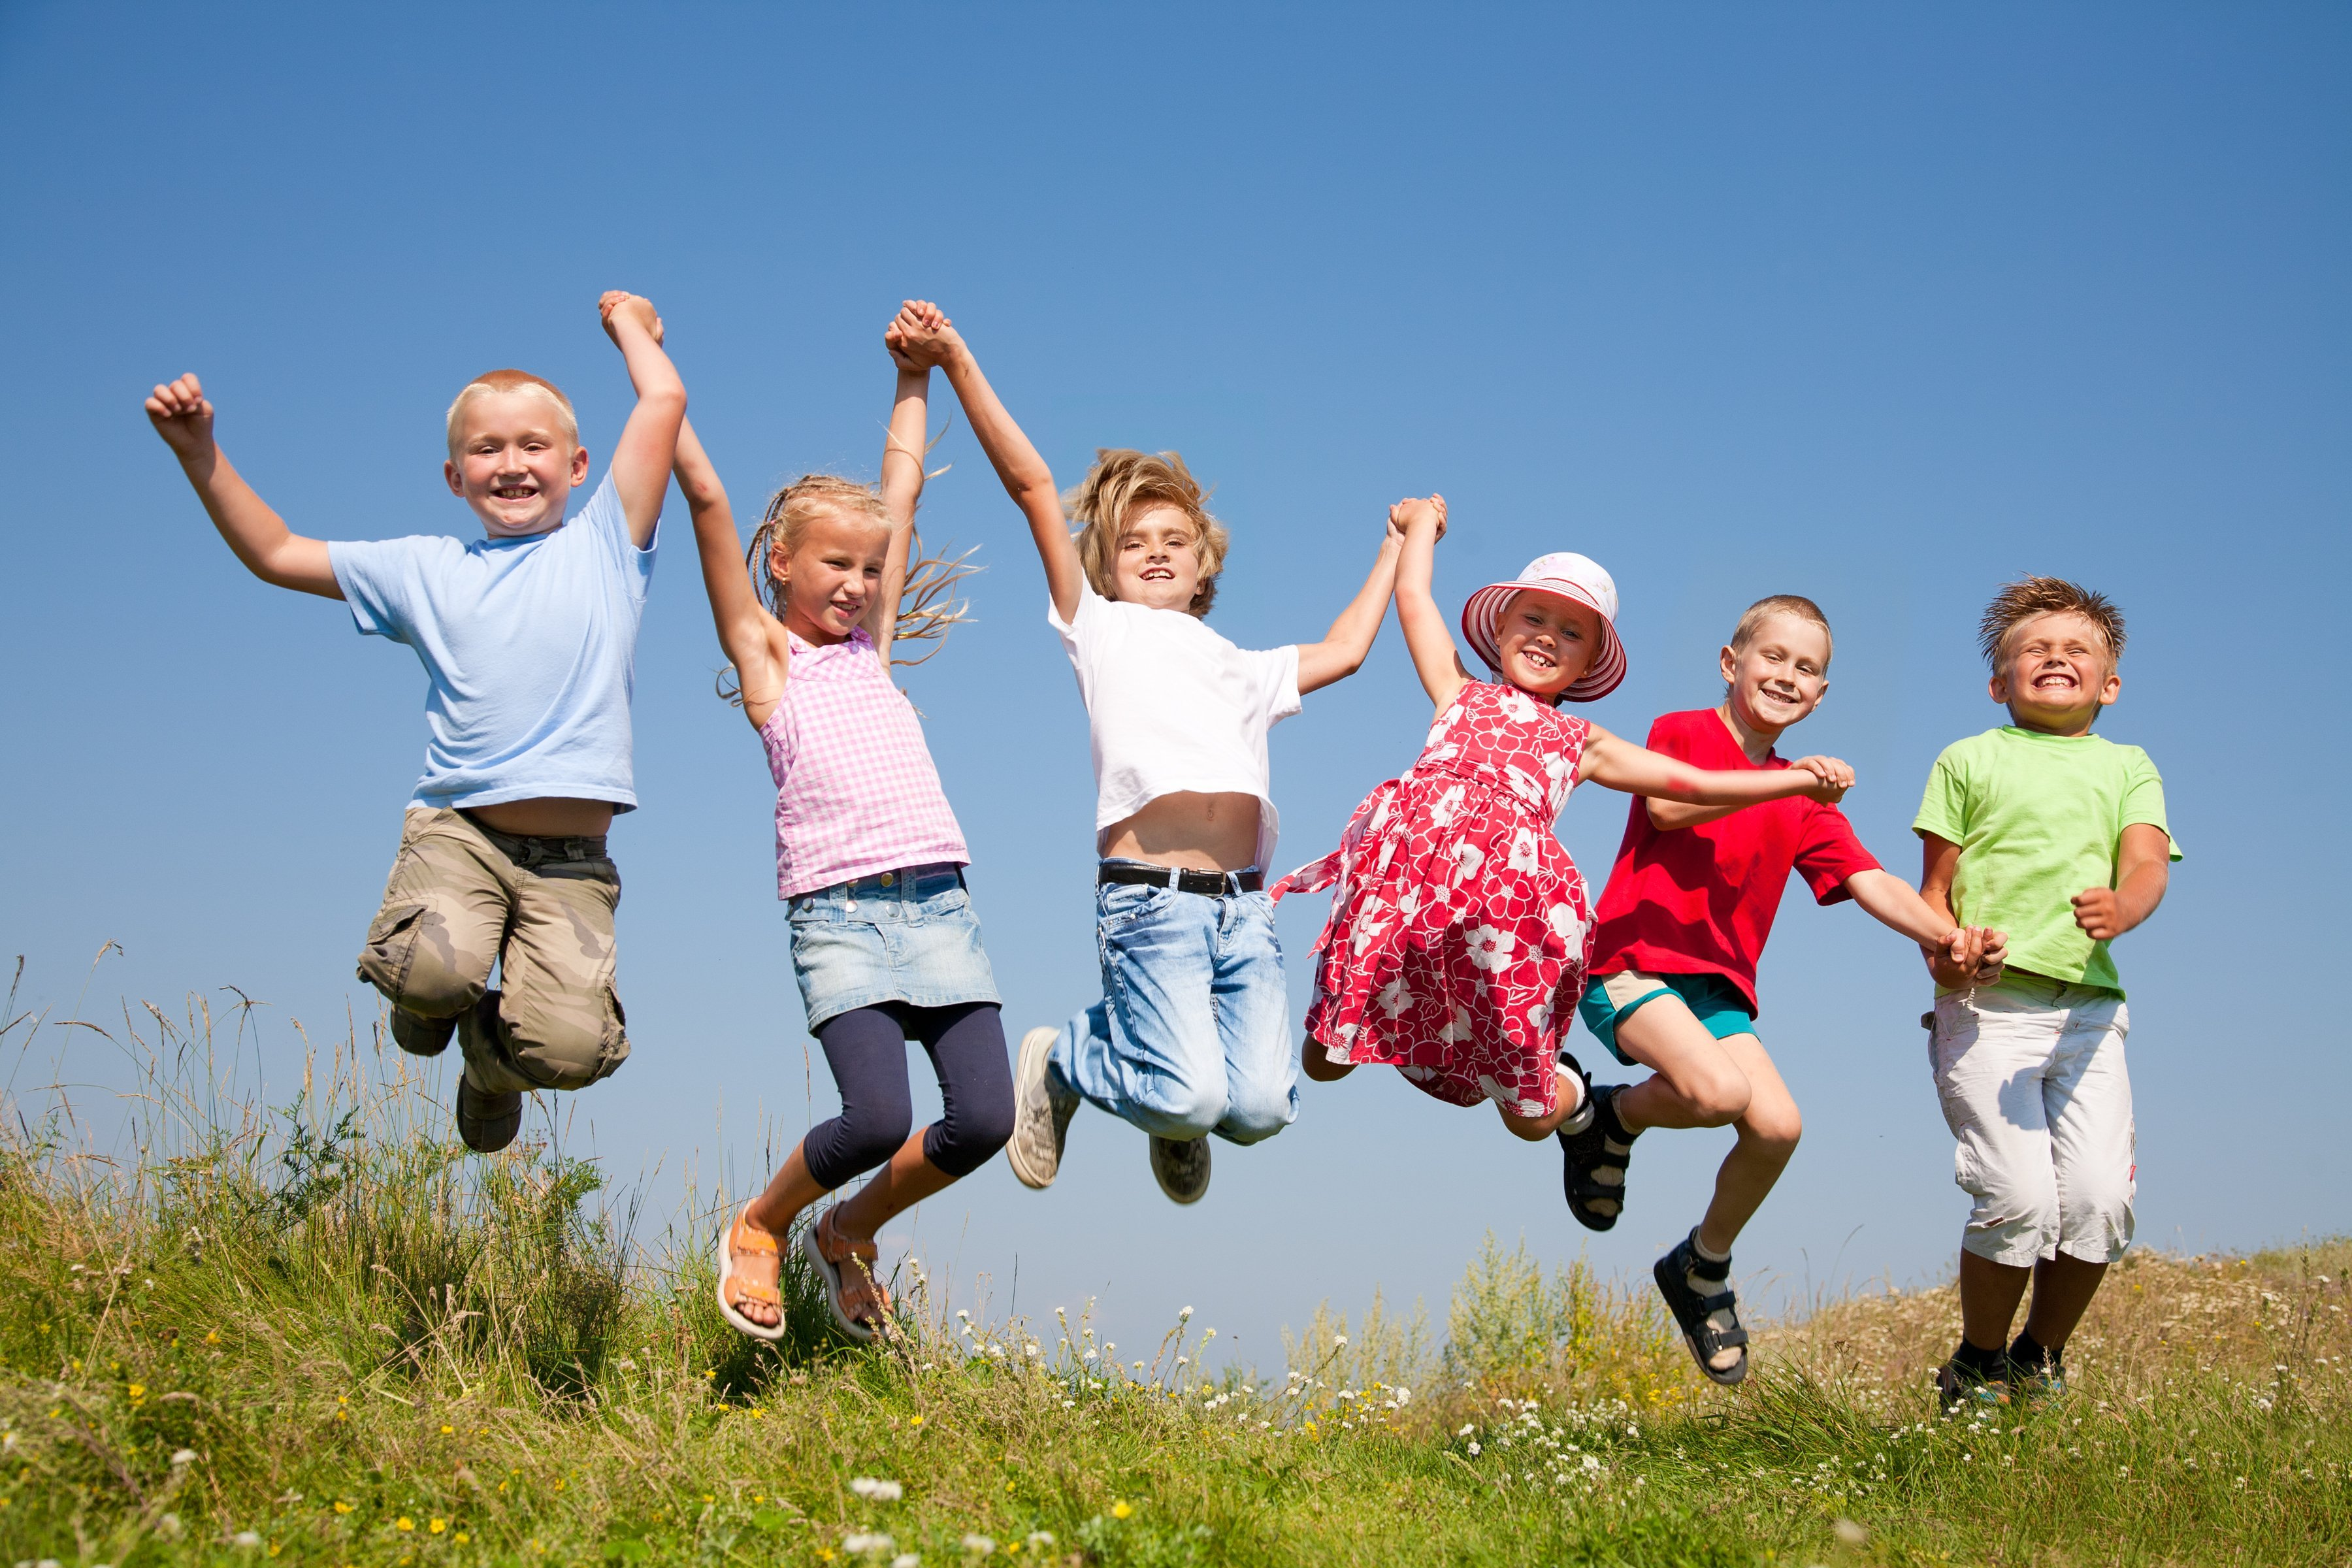 Group happy children jumping on summer meadow against blue sky | Photo: Shutterstock.com